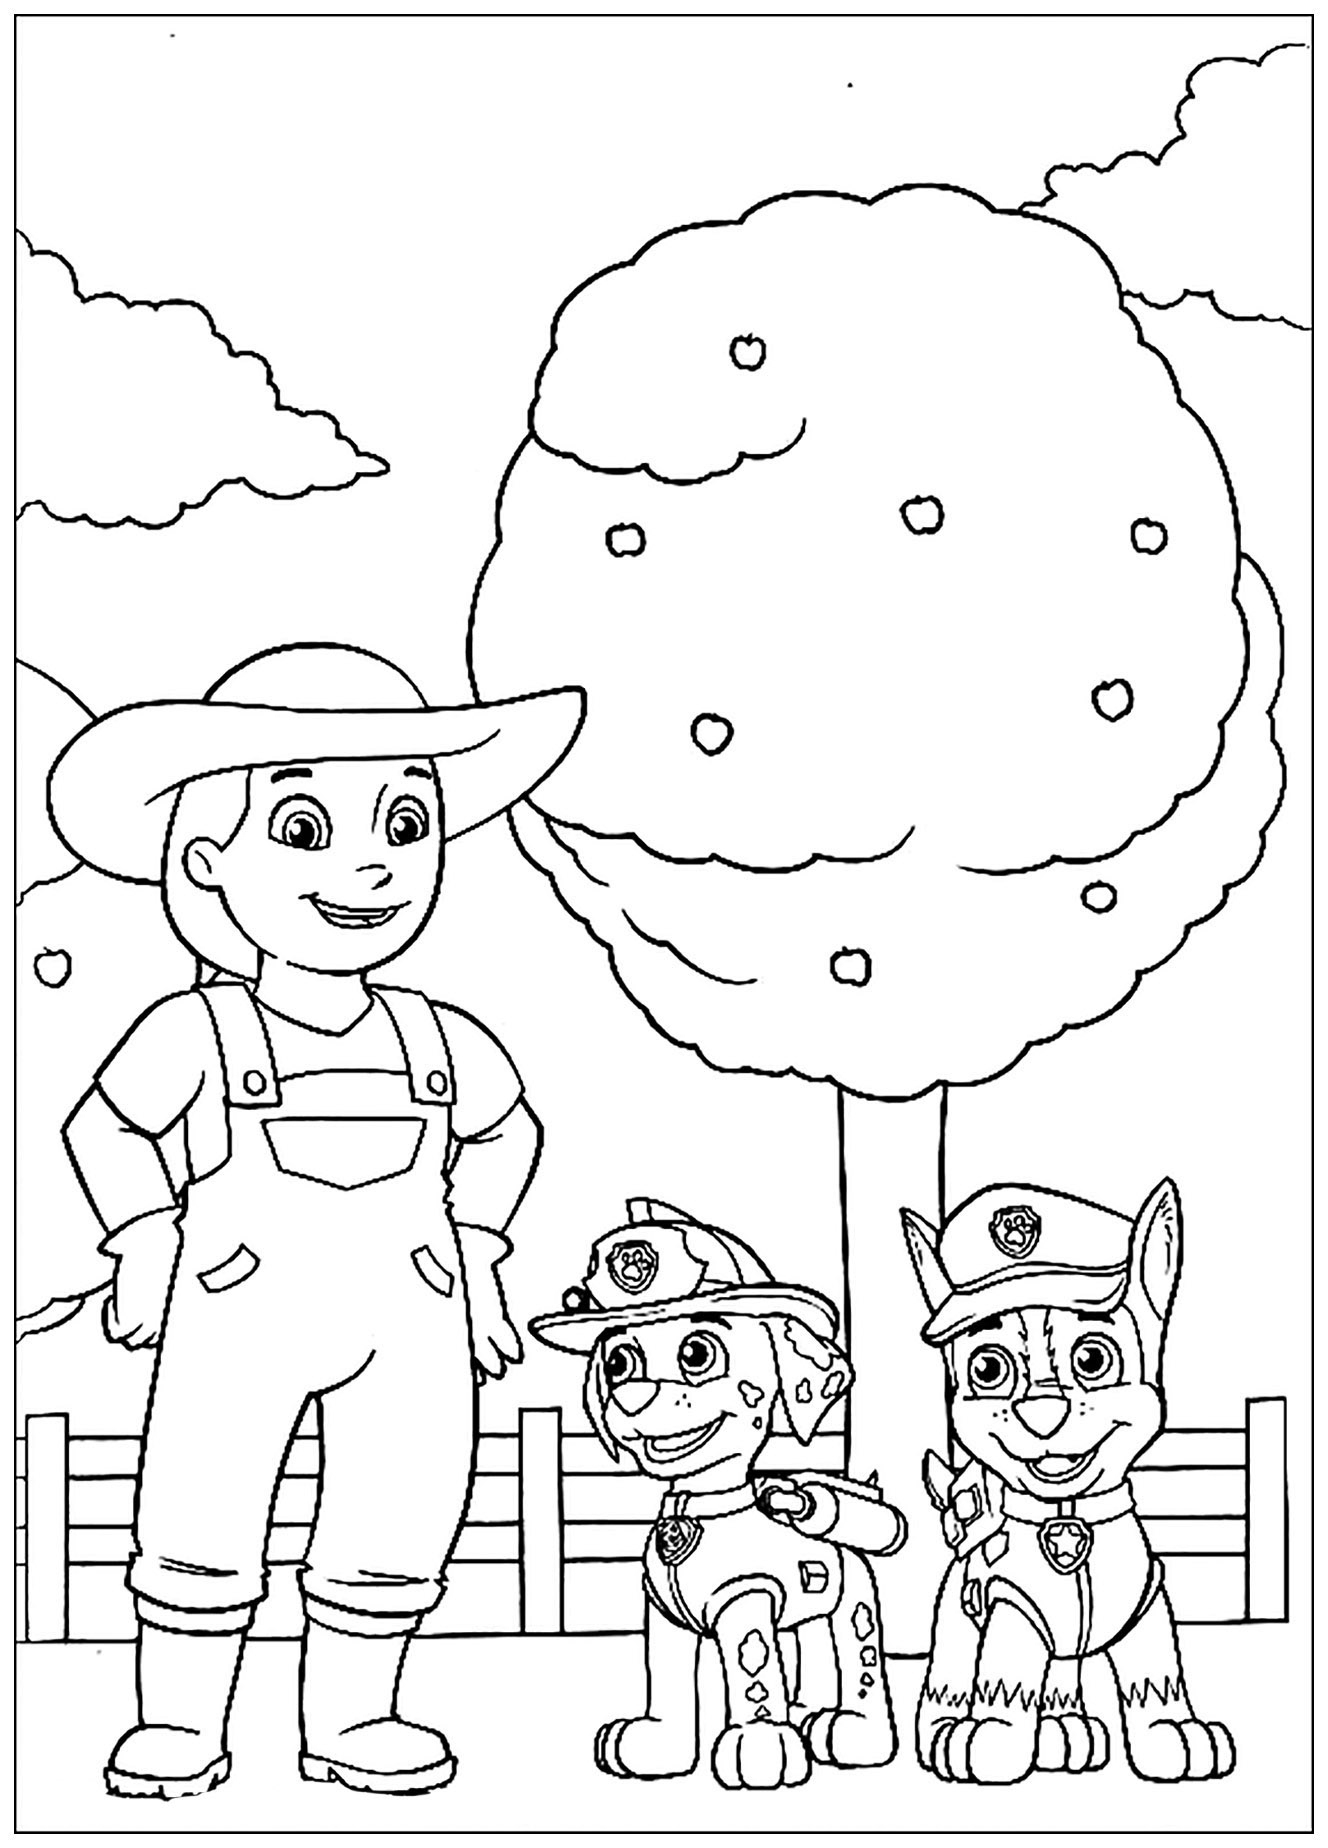 Paw Patrol To Color For Children - Paw Patrol Kids tout Coloriage Pat Patrouille